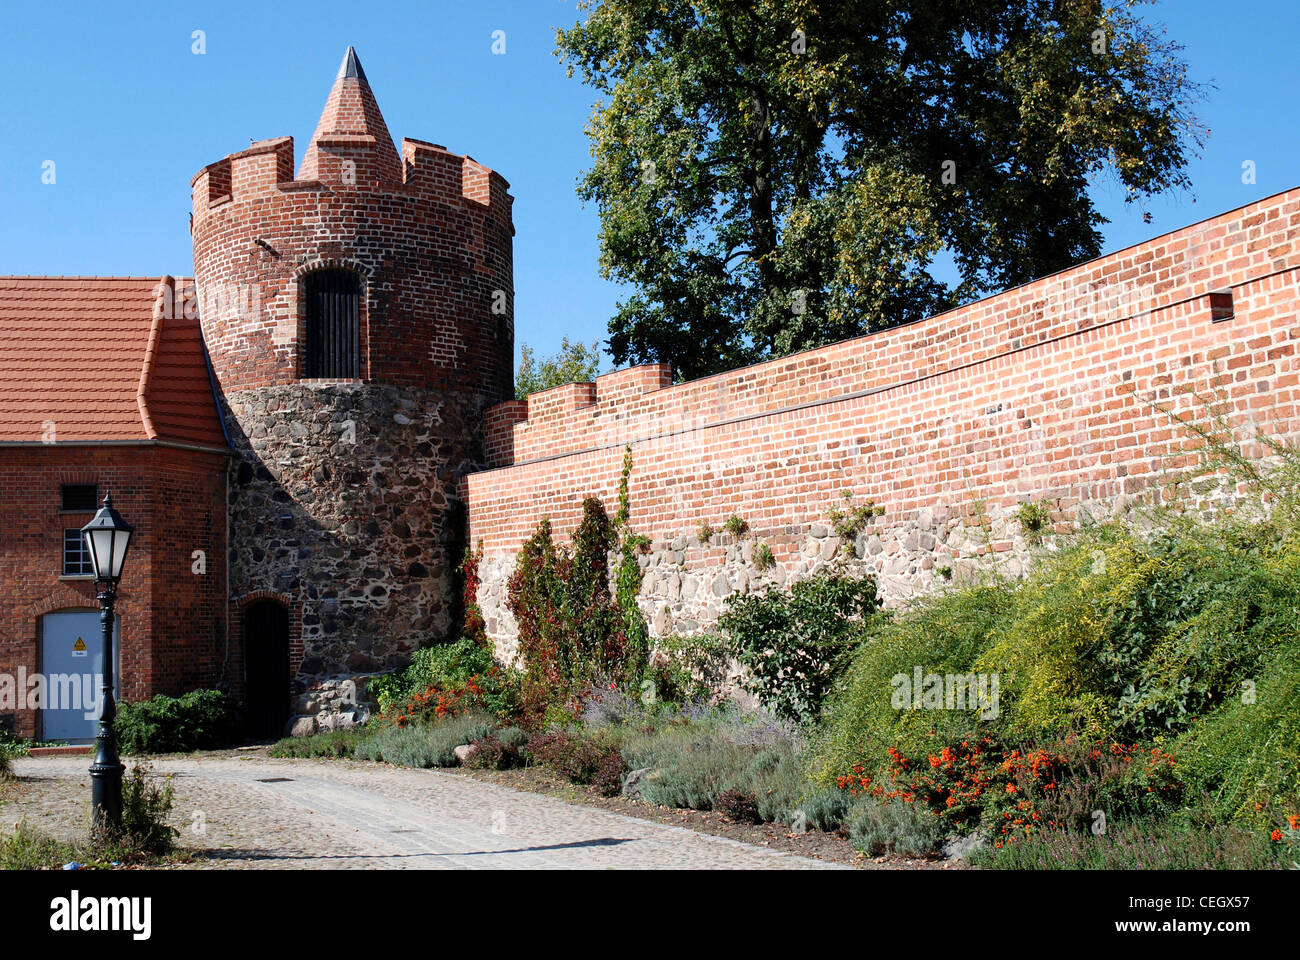 City wall with defence tower of Beeskow in Brandenburg. - Stock Image